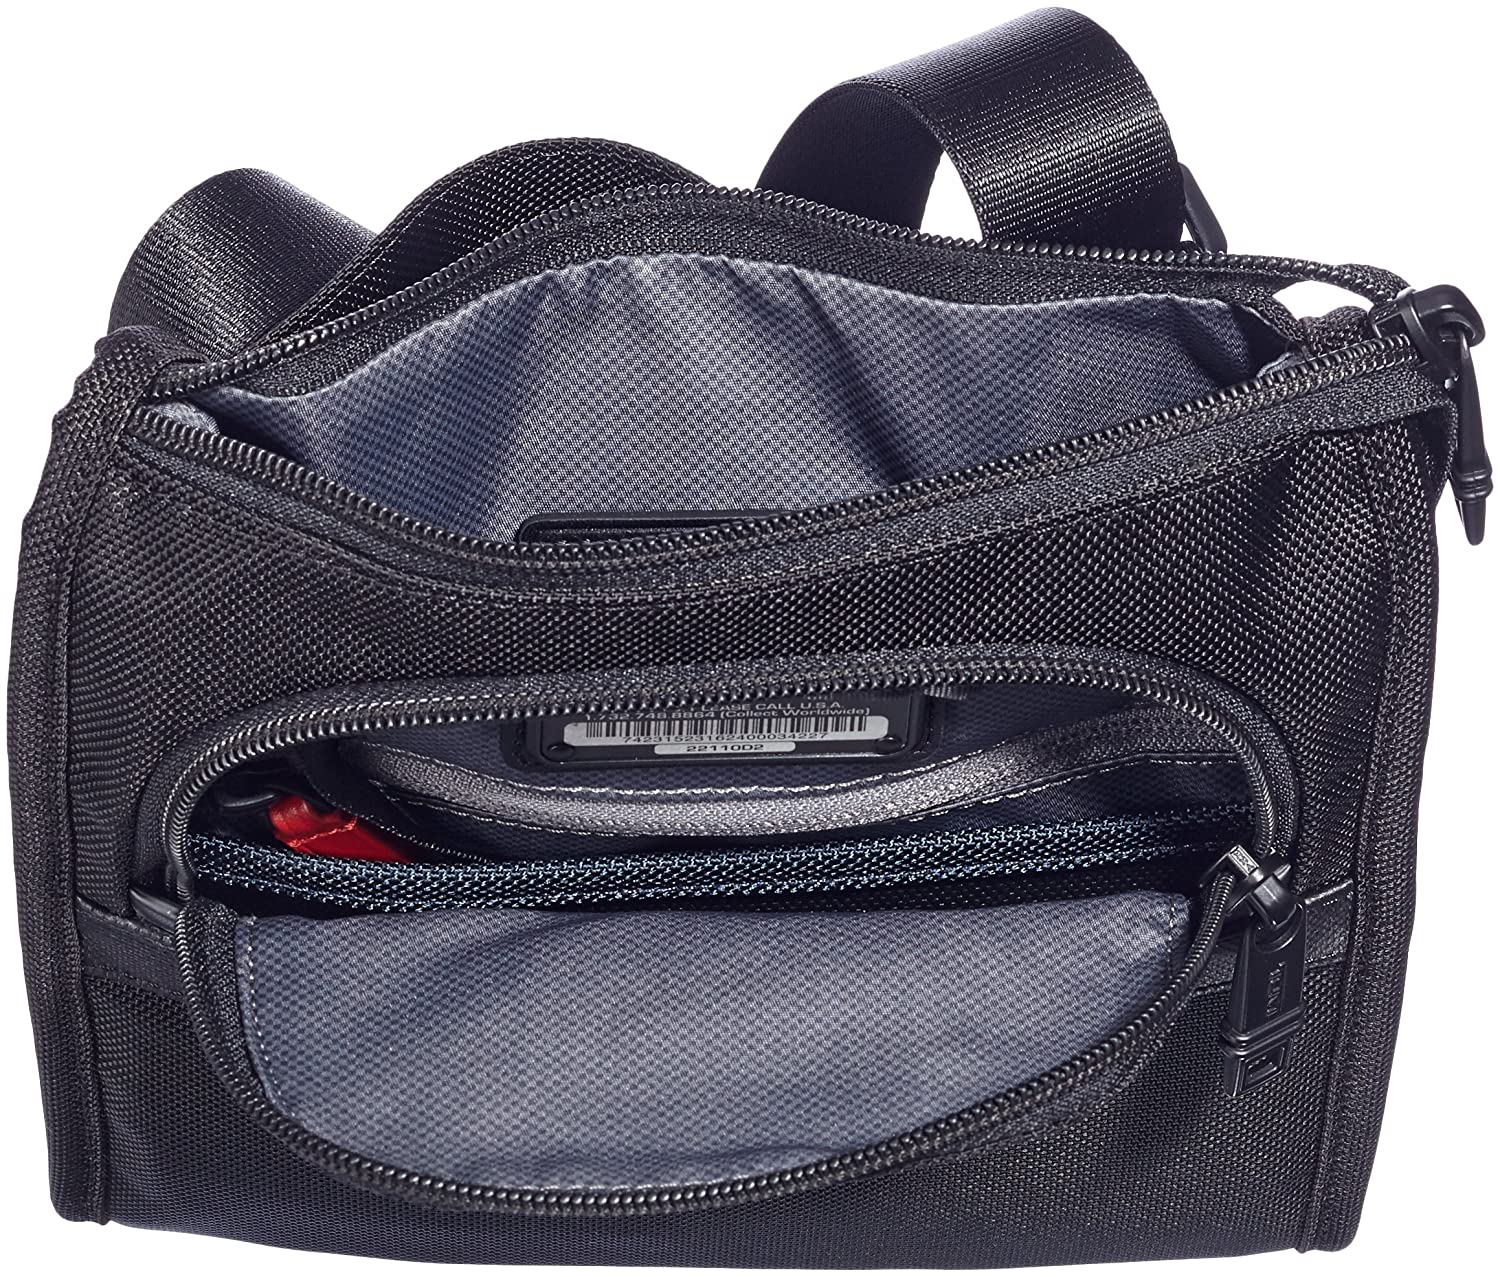 Tumi Alpha 2 Pocket Bag Small Black One Size Tas Ransel Sport P722 Messenger Bags